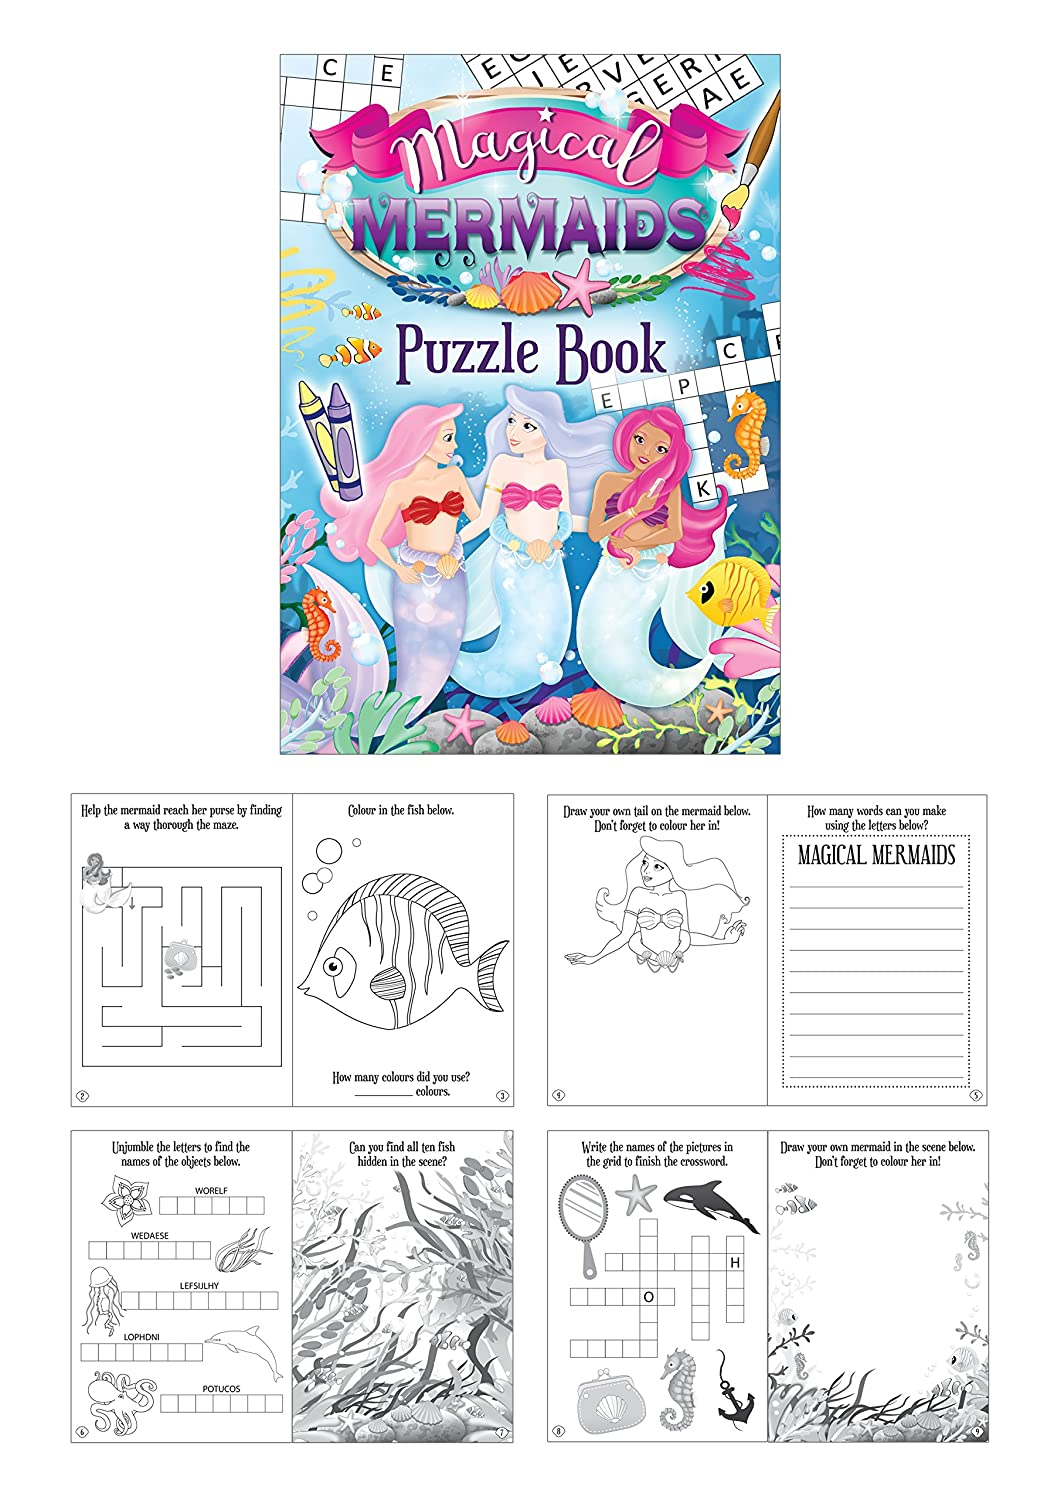 Loot//Party Bag Fillers Wedding//Kids Activity 6 Mini Colouring Books A6